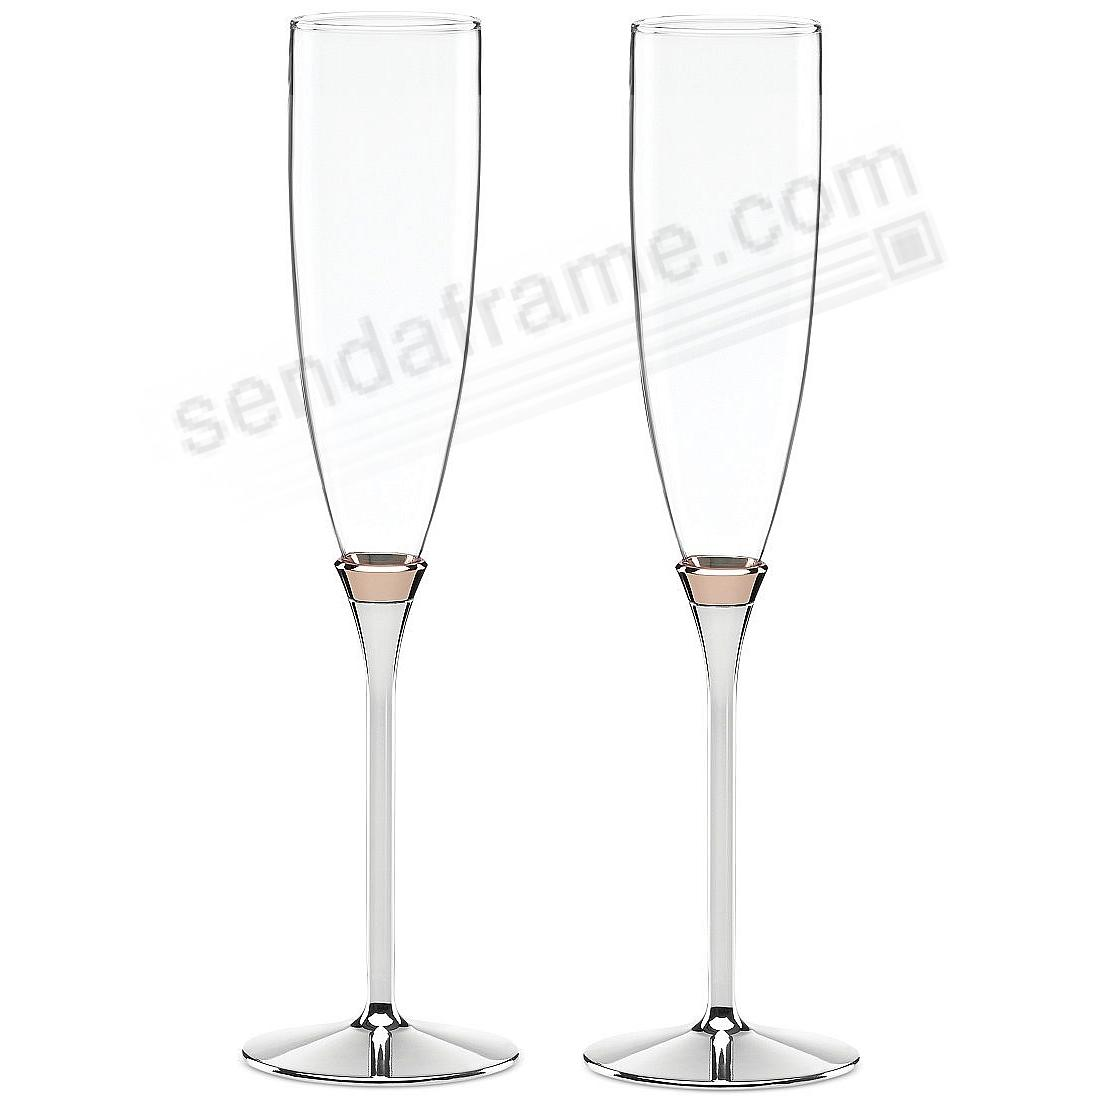 The ROSY GLOW FLUTES (PAIR) by kate spade®